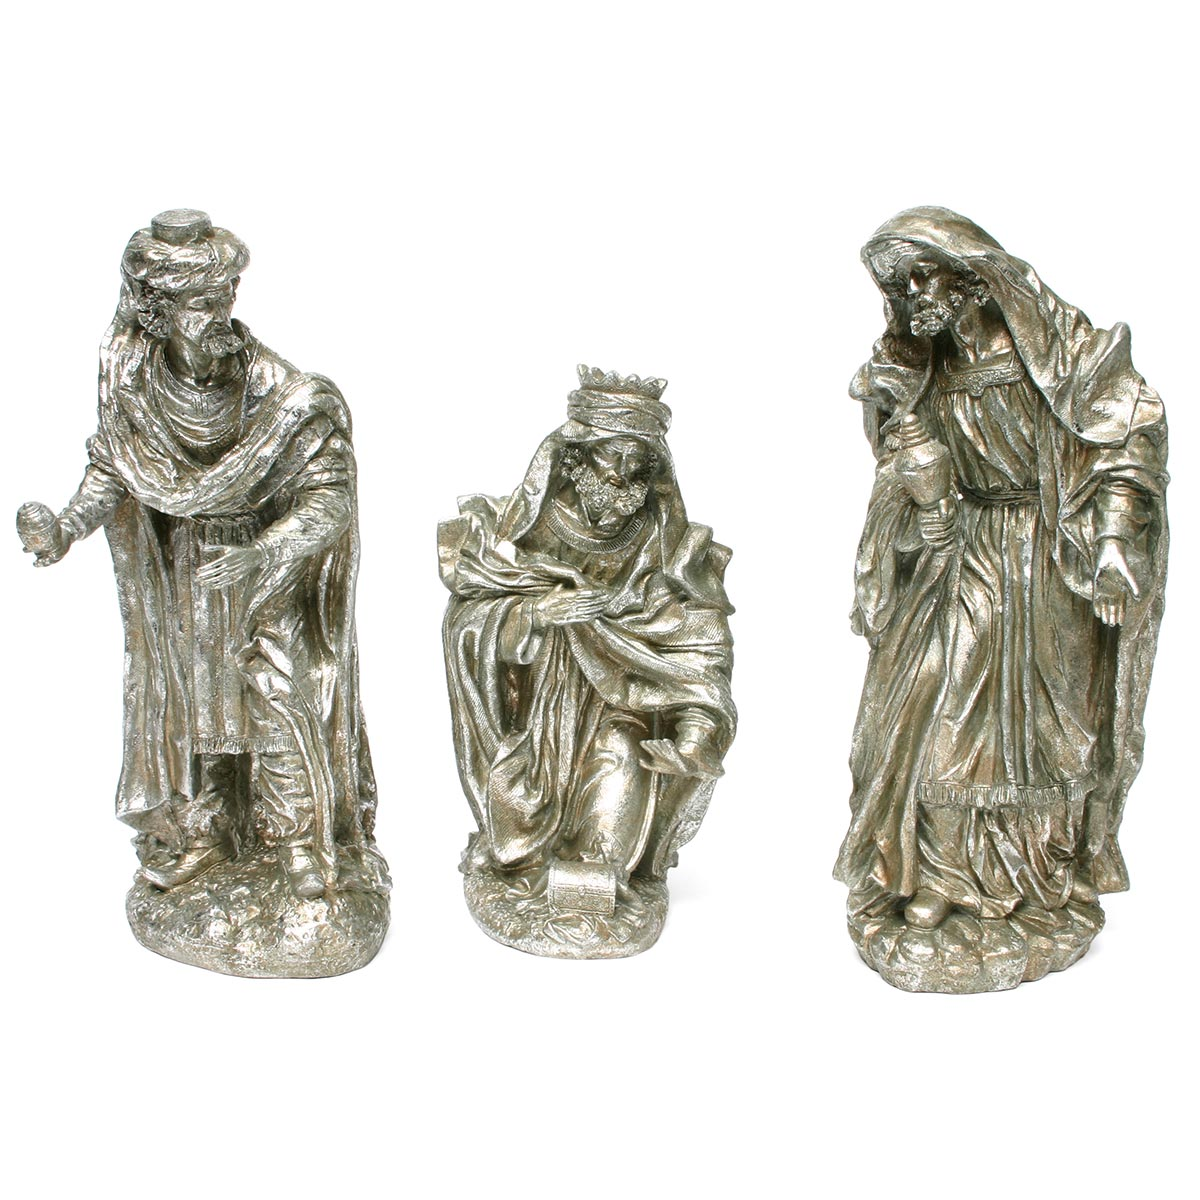 WISE MEN TABLETOPPER SET OF 3 ANTIQUE SILVER